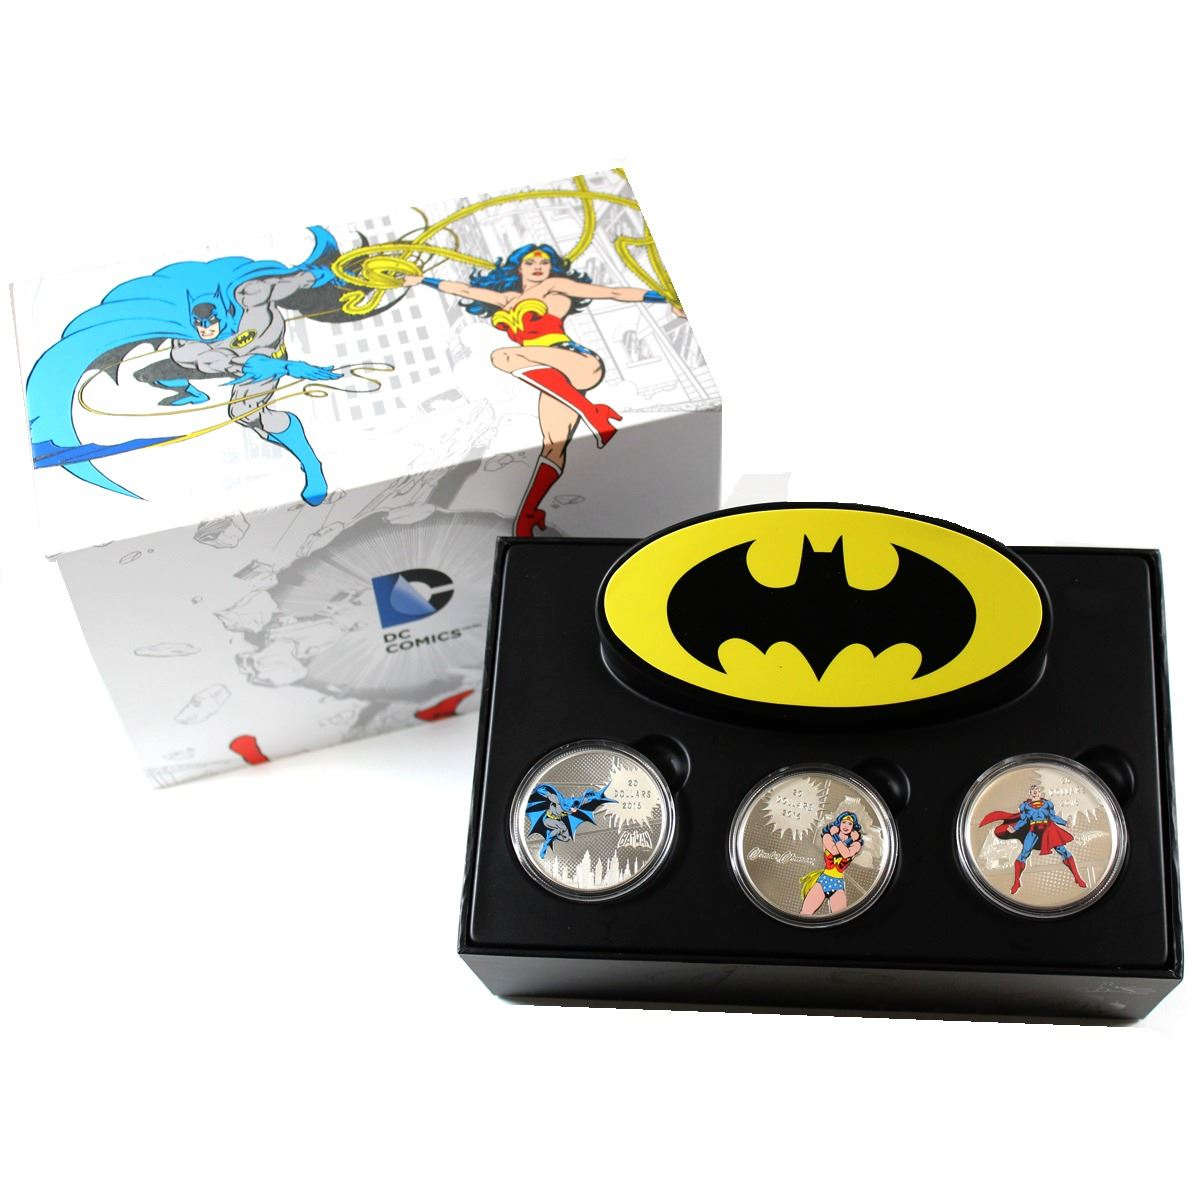 RCM Issue: 2016 Canada $20 DC Comics Originals Fine Silver Coin 3-coin Set  in Deluxe Display Packagi